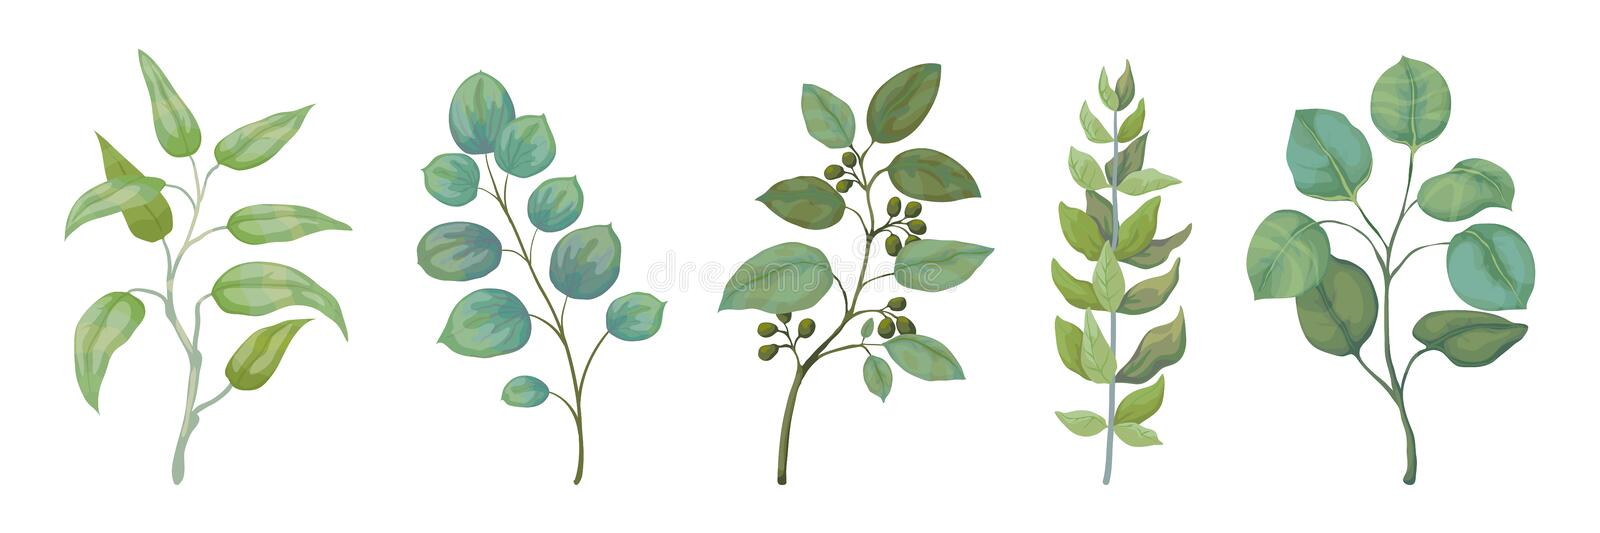 Eucalyptus plants. Rustic foliage branches and leaves for wedding invitation cards, decorative herbs collection. Vector. Botanical set trendy nature watercolour stock illustration